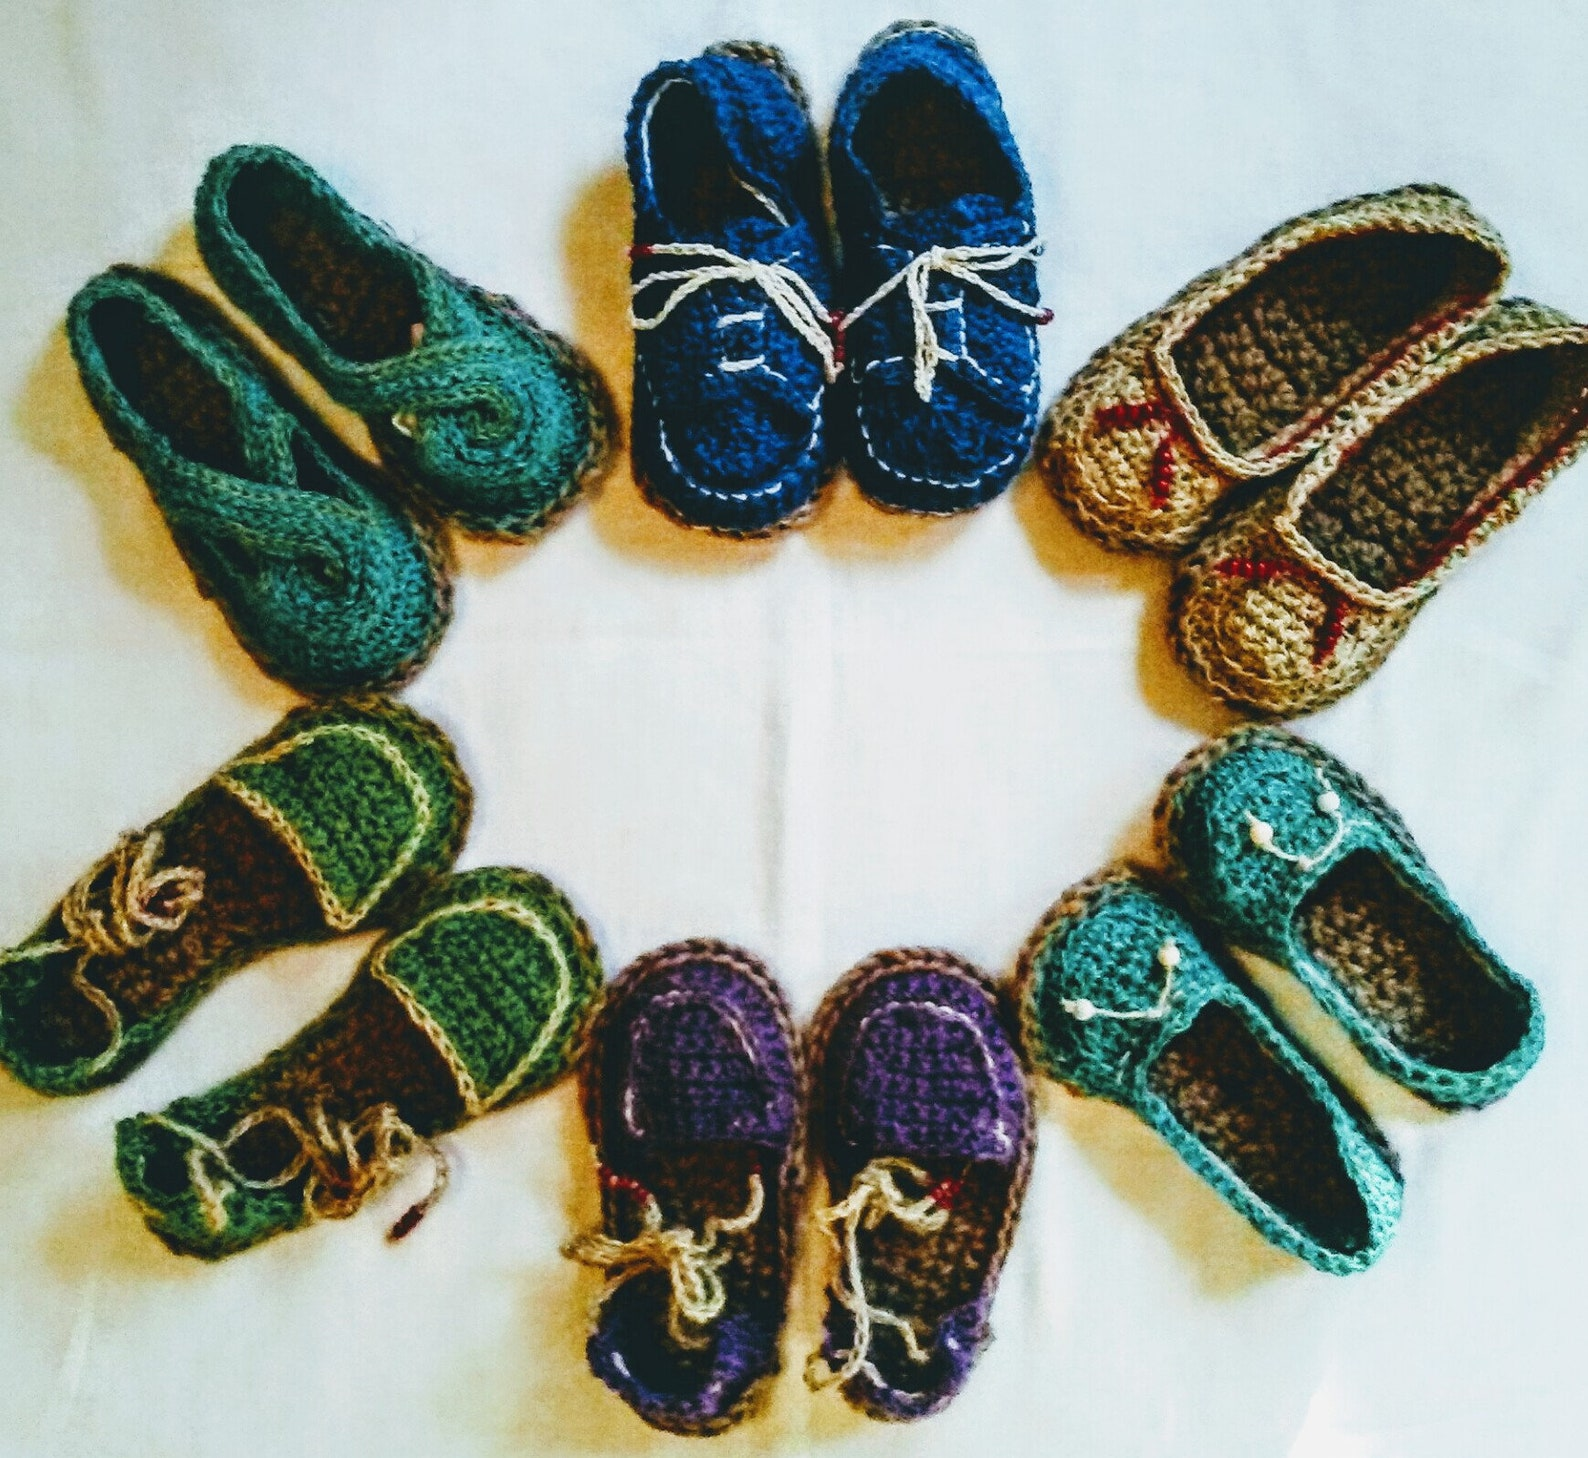 handmade espadrille ballet style with crocheted jute